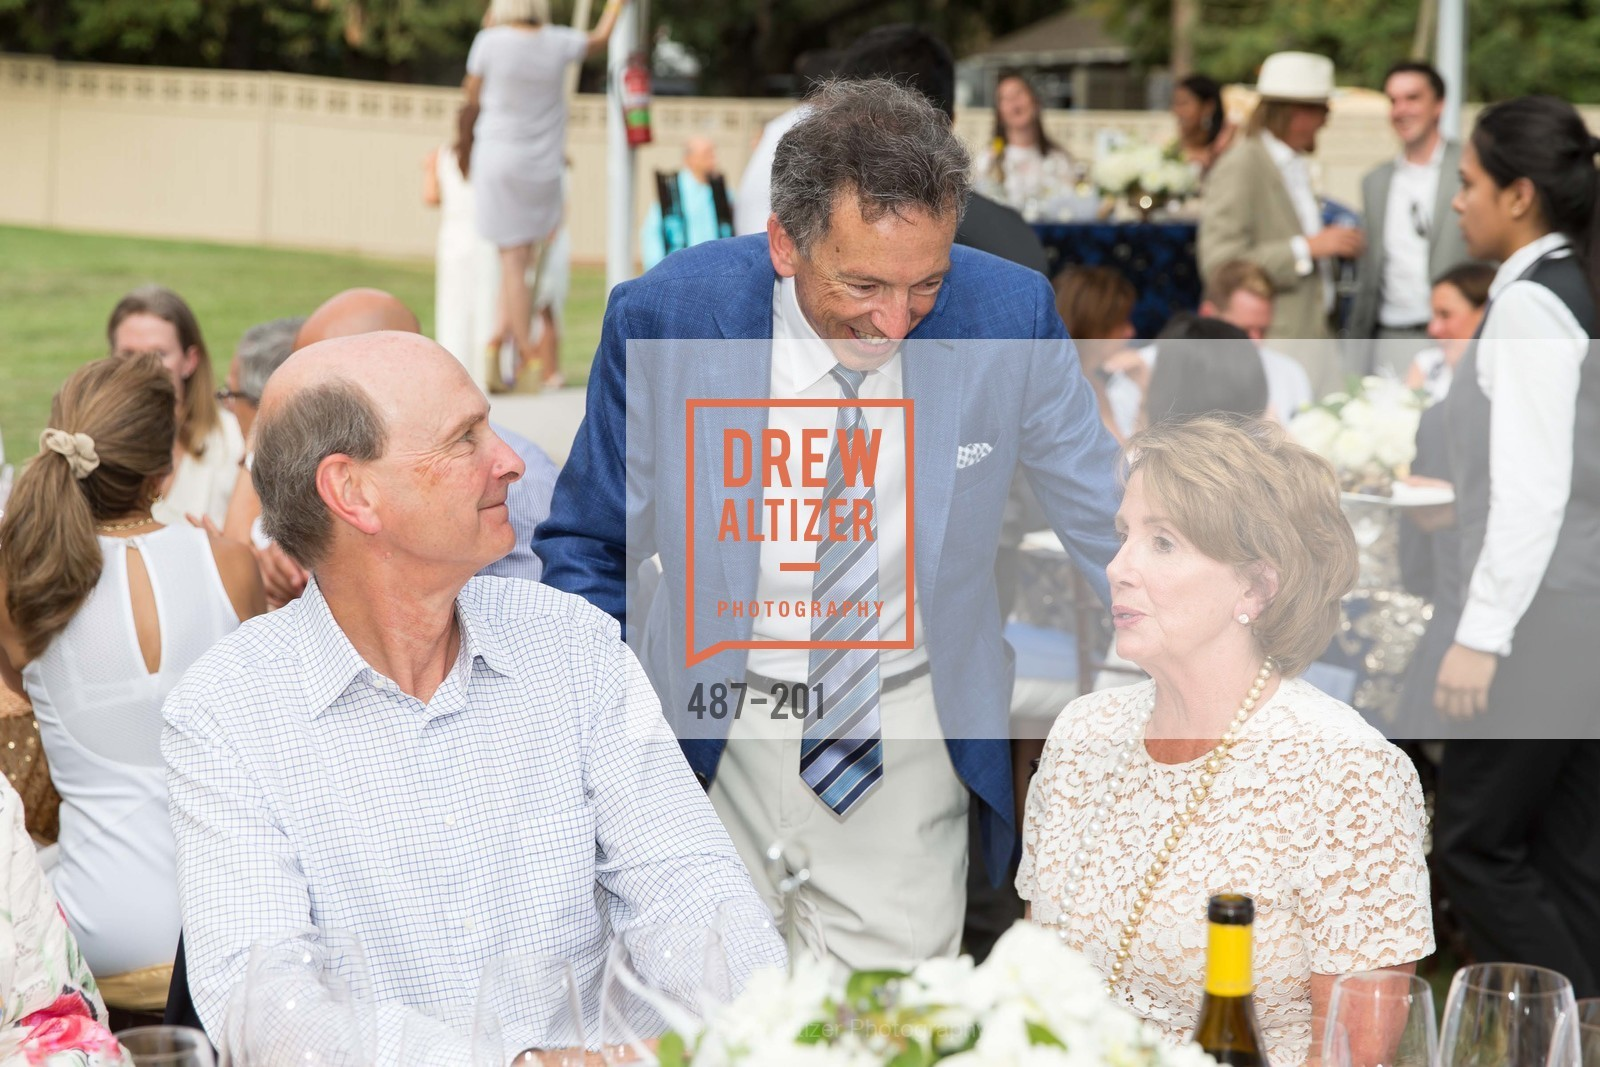 Keith Geeslin, Rick Walker, Nancy Pelosi, Photo #487-201